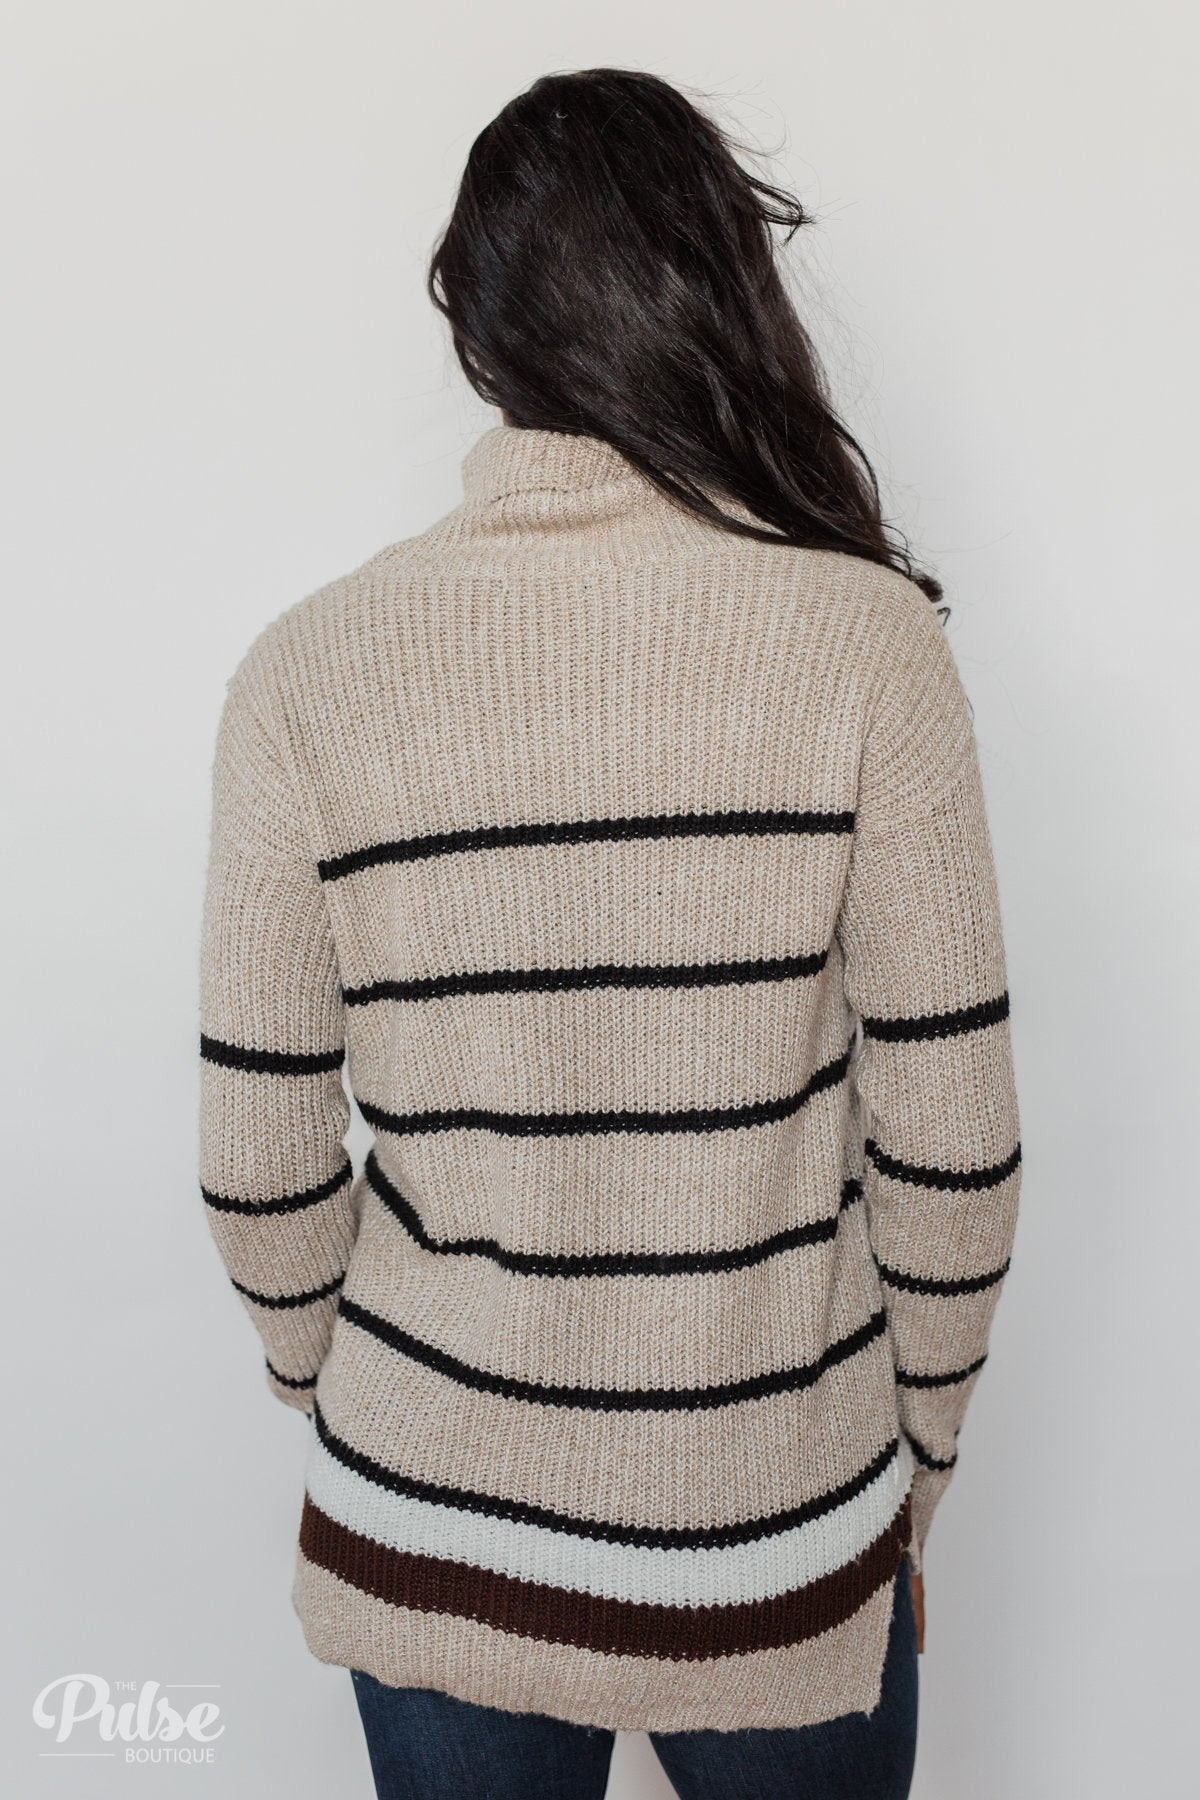 The Way You Make Me Feel Turtleneck Sweater- Neutral Tones